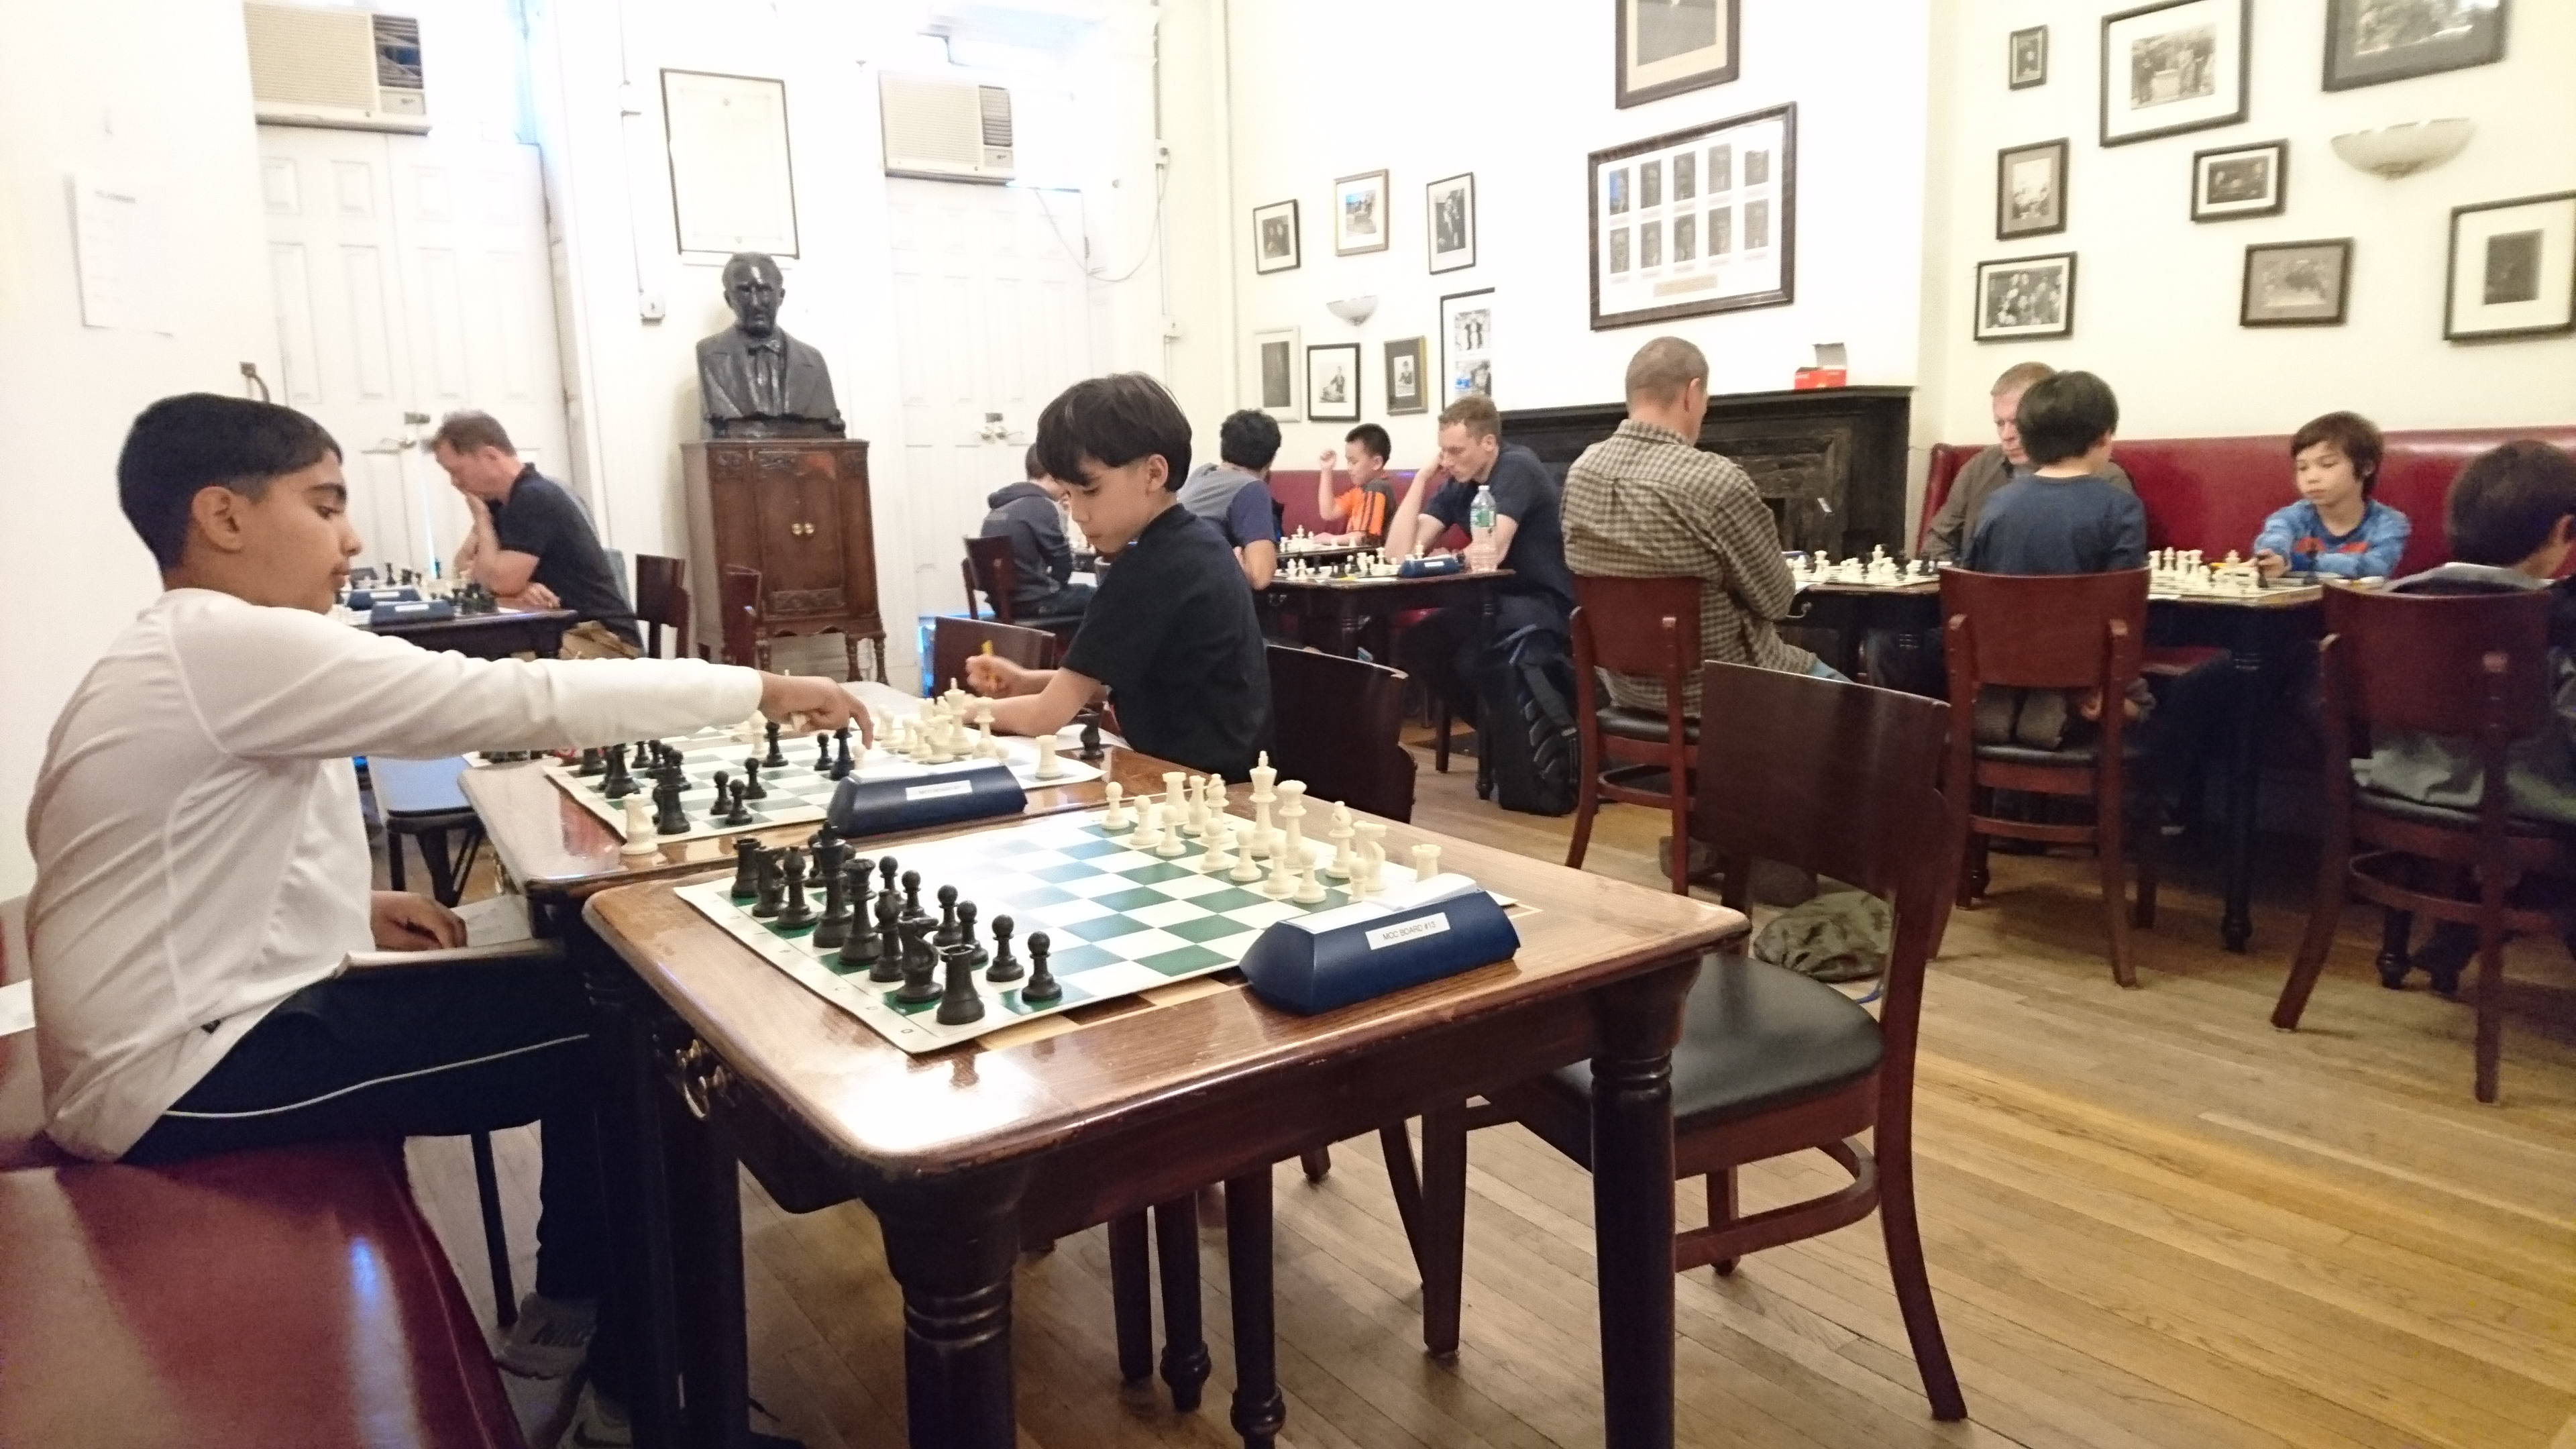 Marshall Chess Club i Greenwich Village.